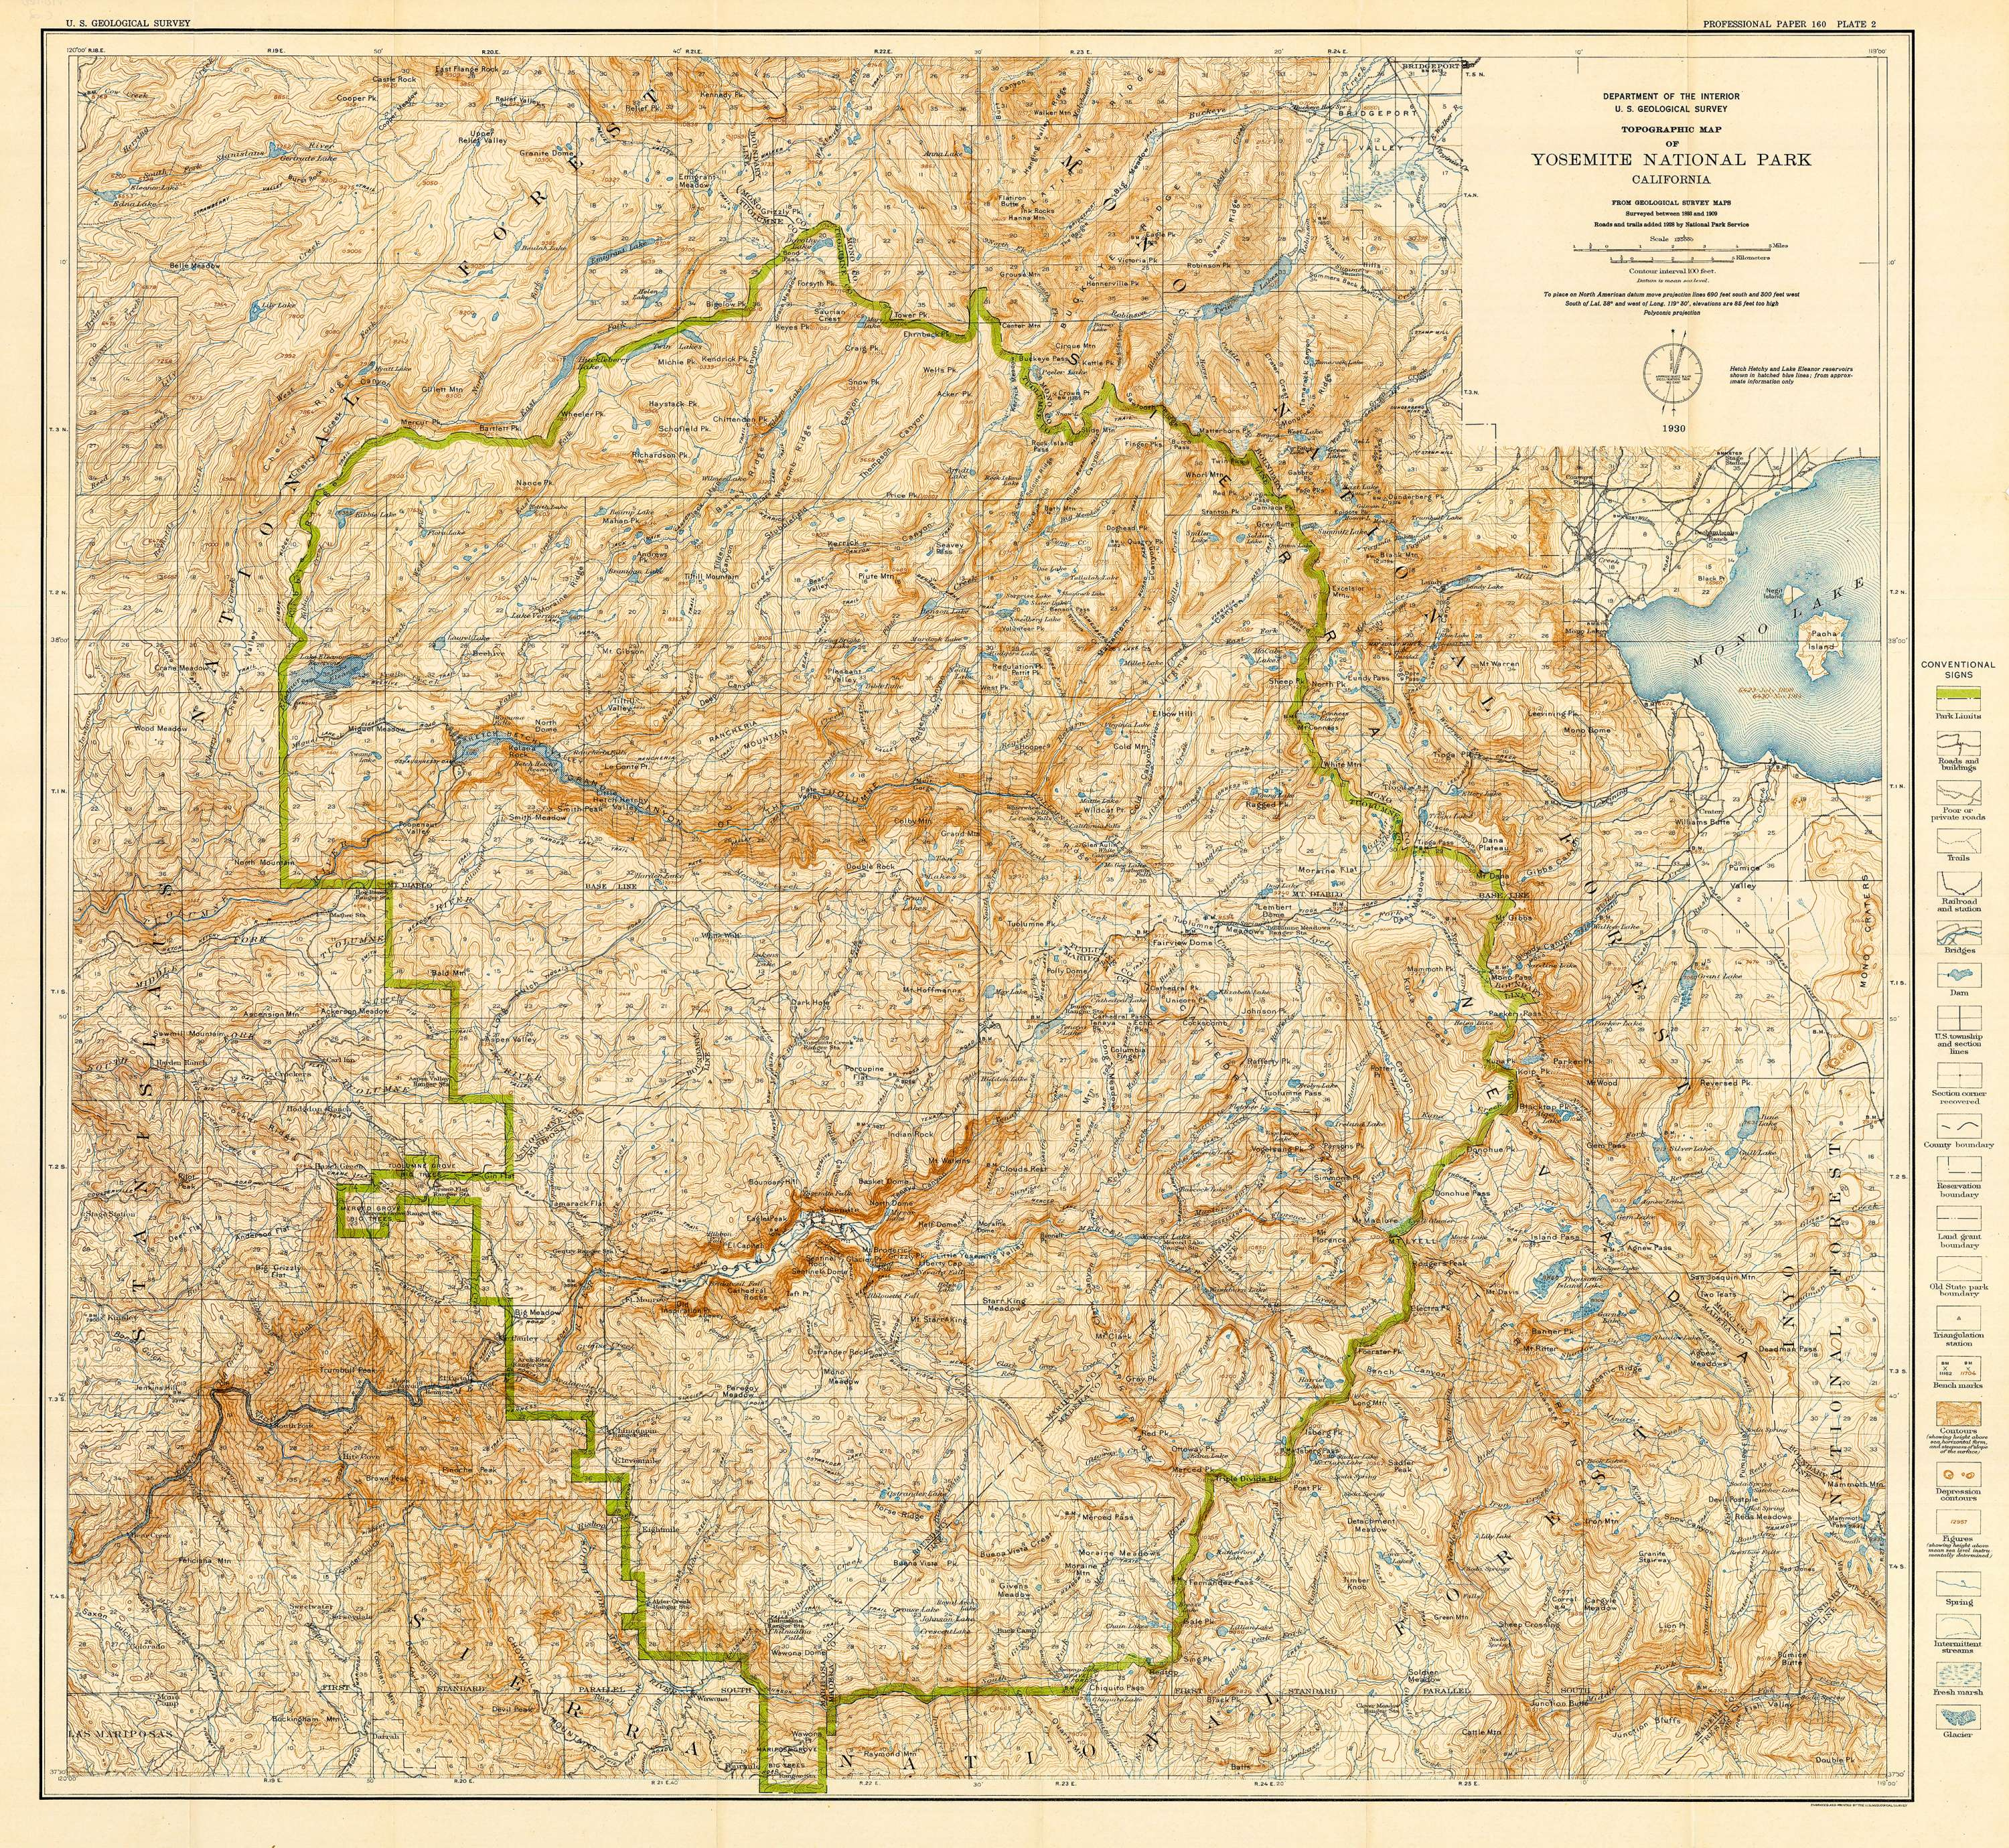 Geologic history of the Yosemite Valley